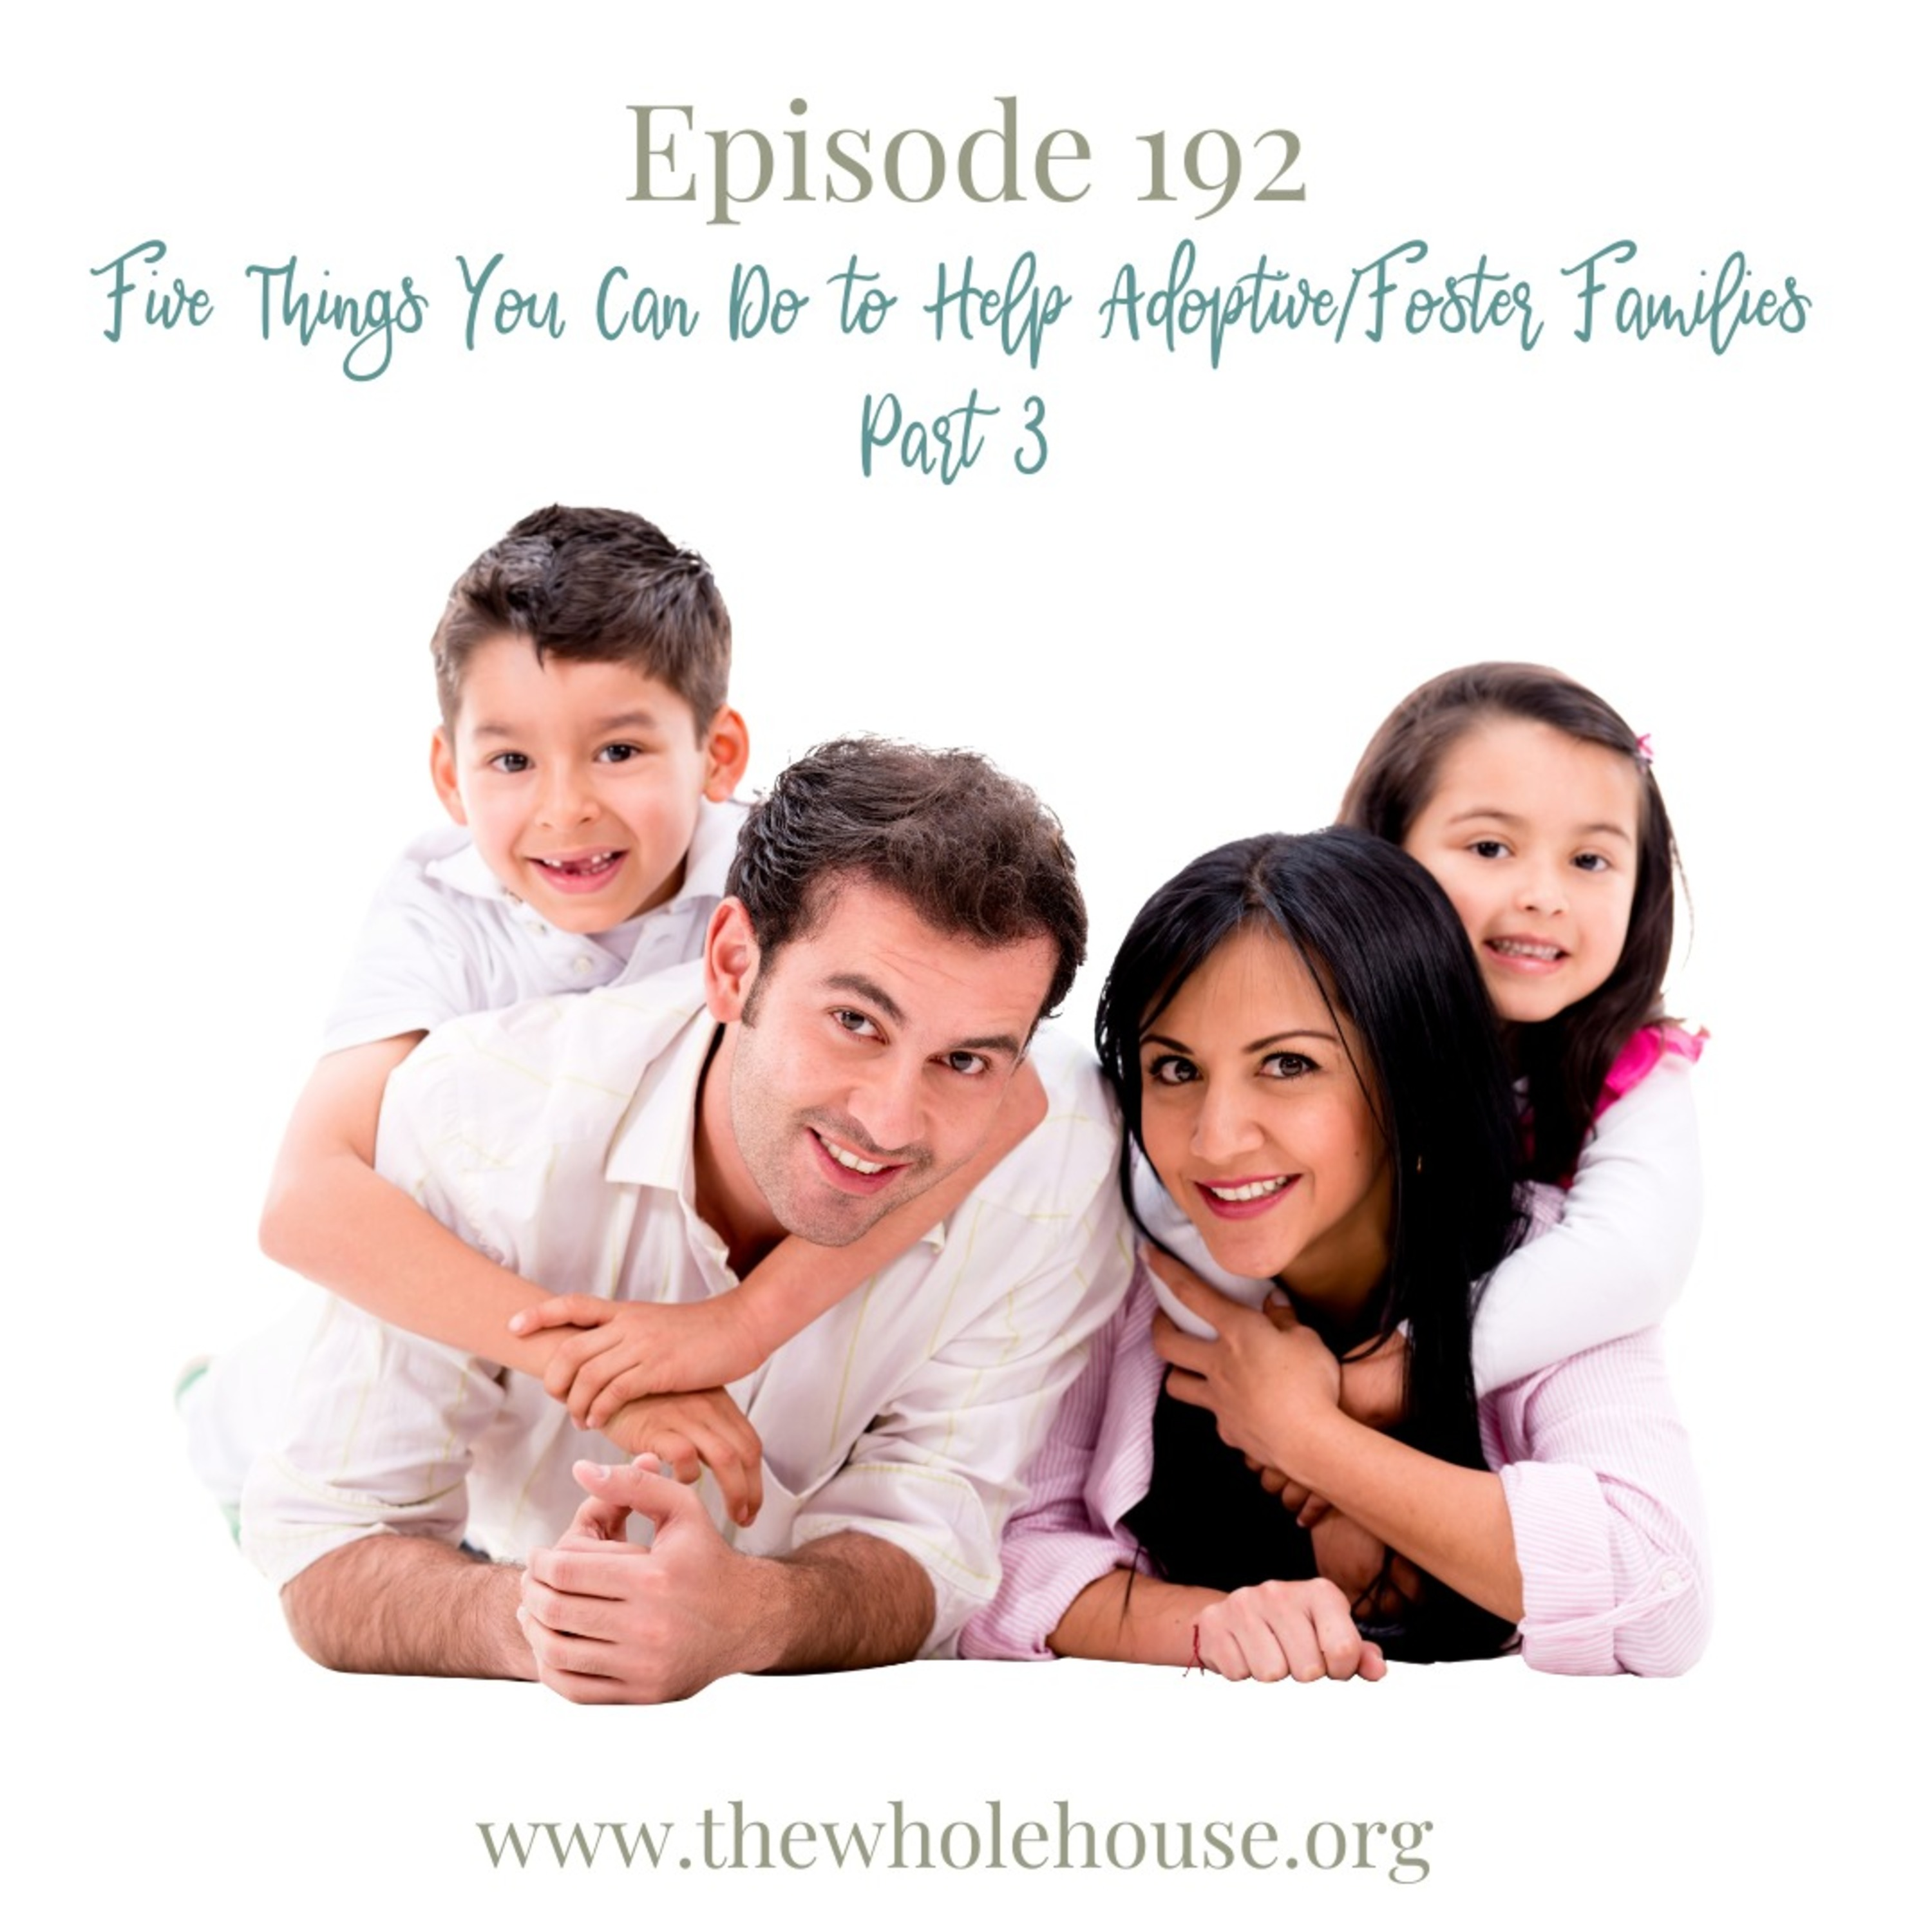 Five Things You Can Do to Help Adoptive/Foster Families Part 3